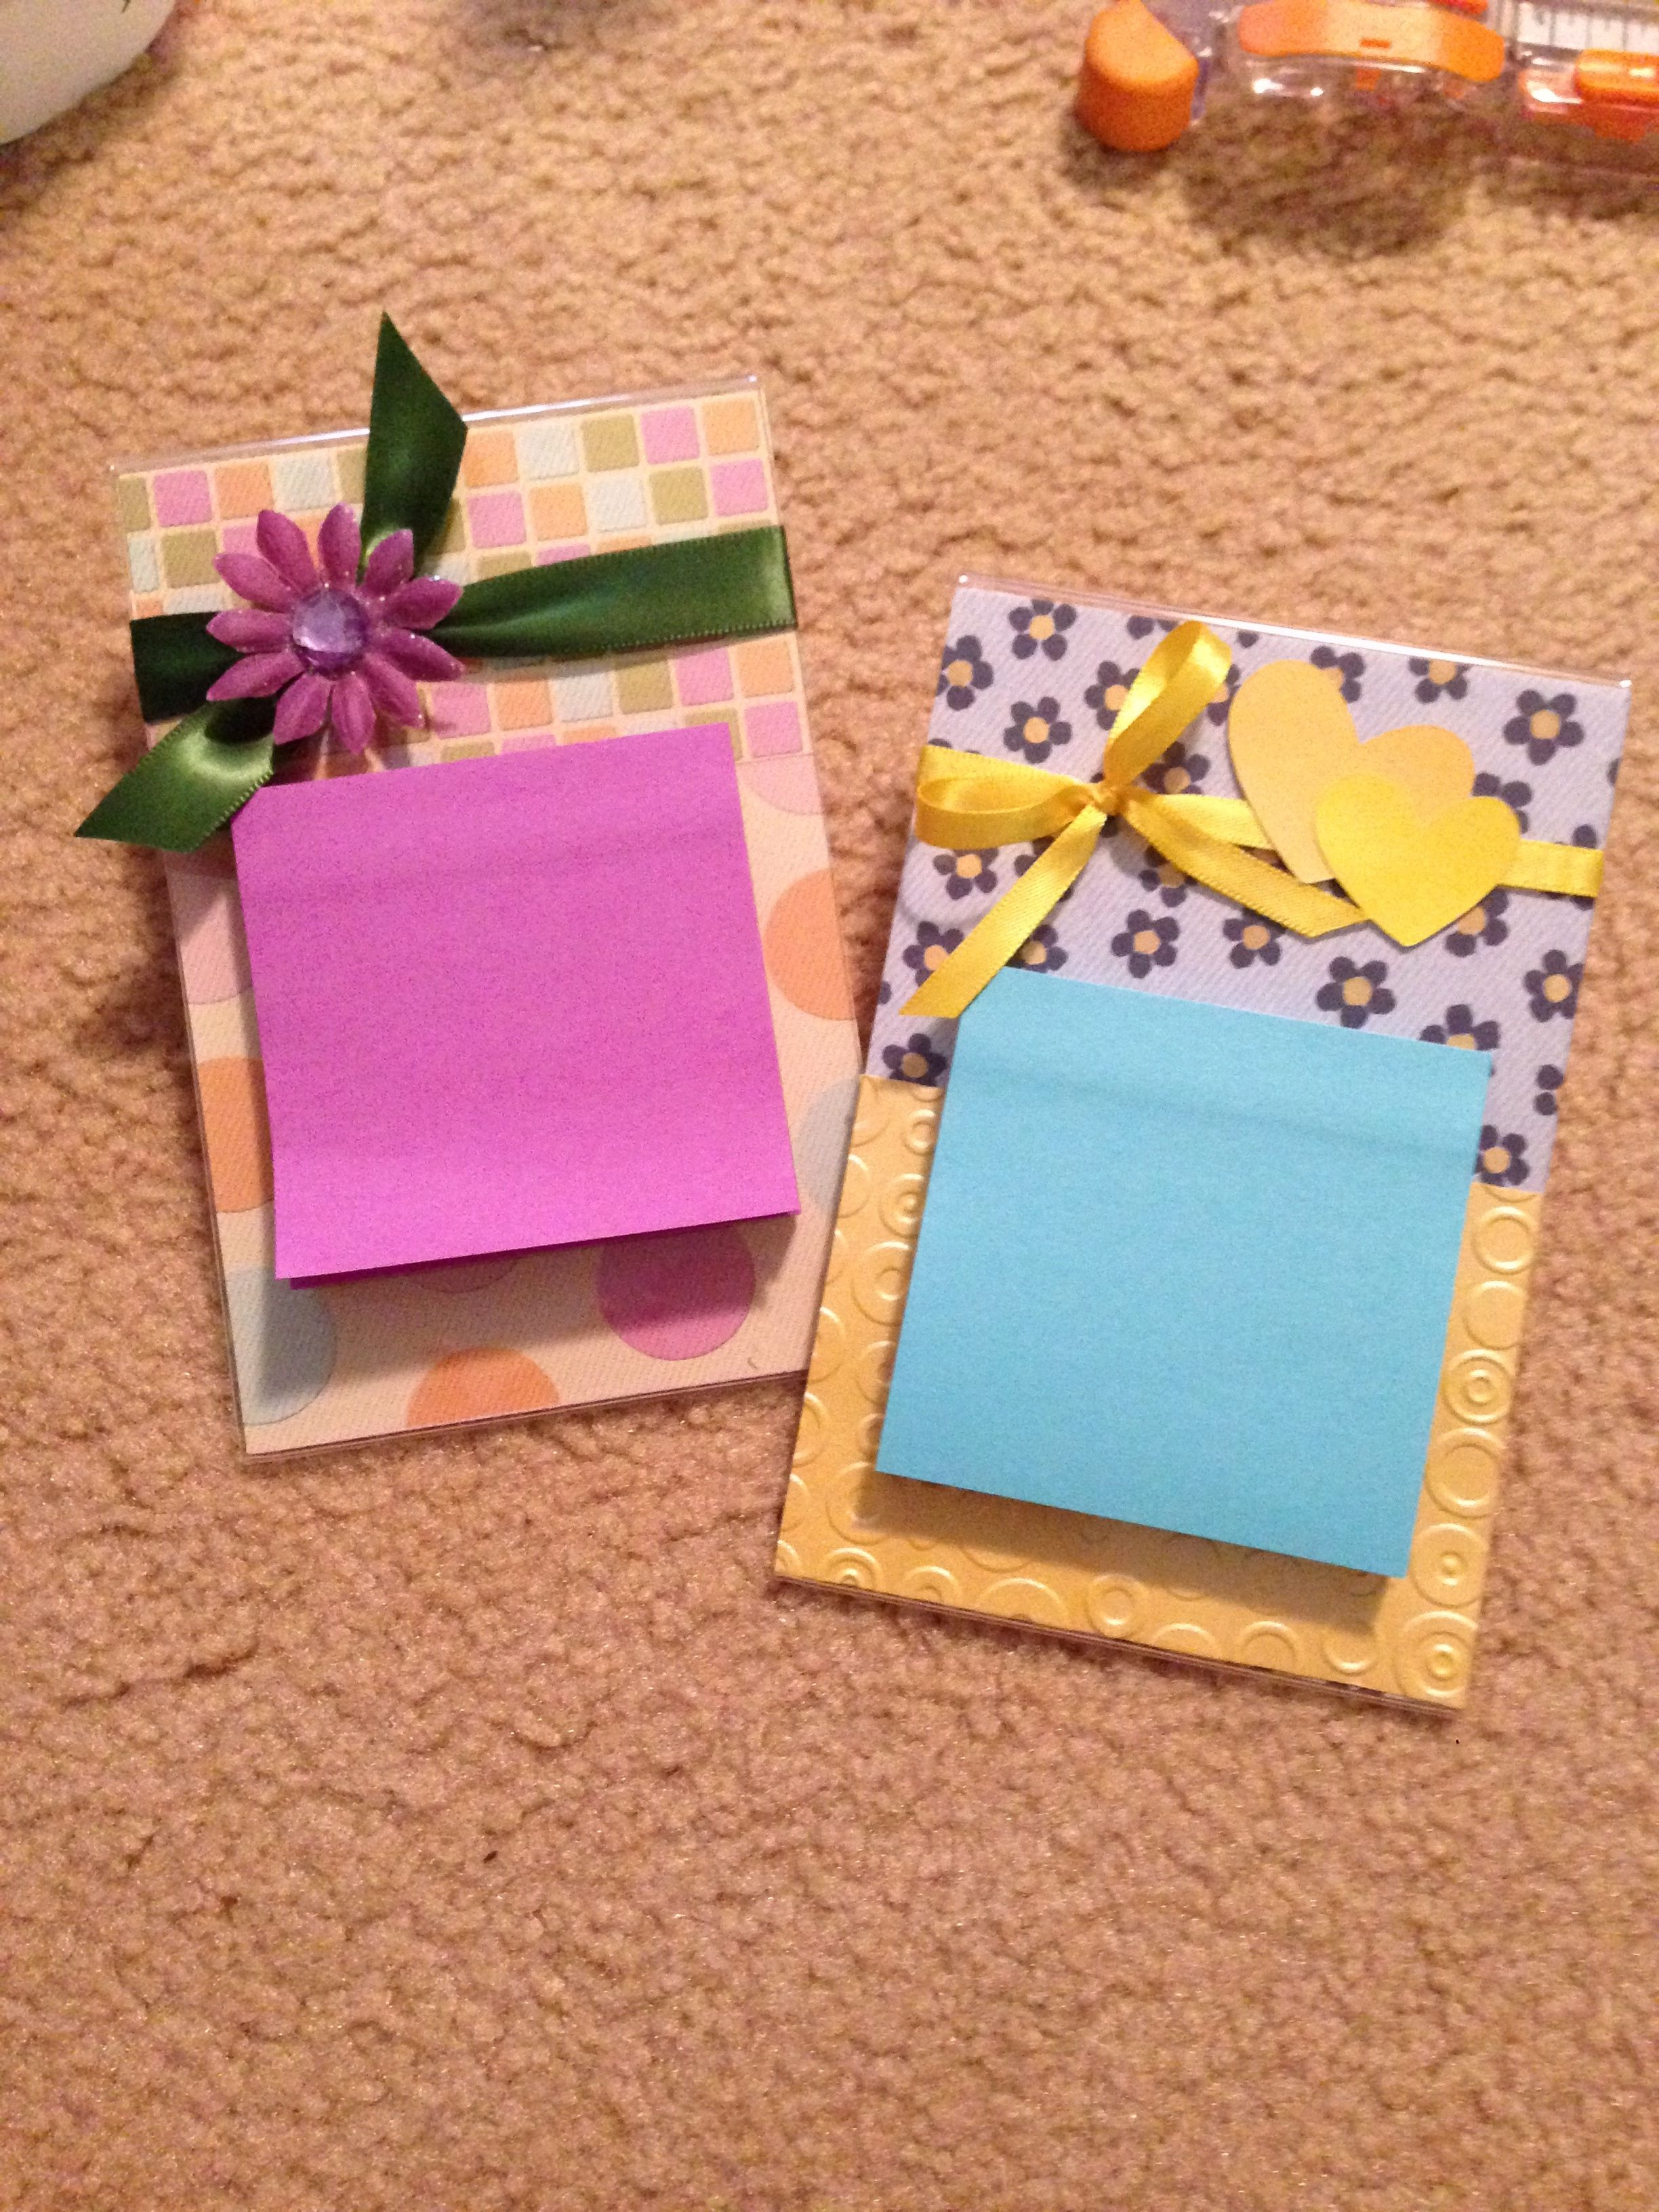 Cute gift ideas for office employees. Post-it note stand ...